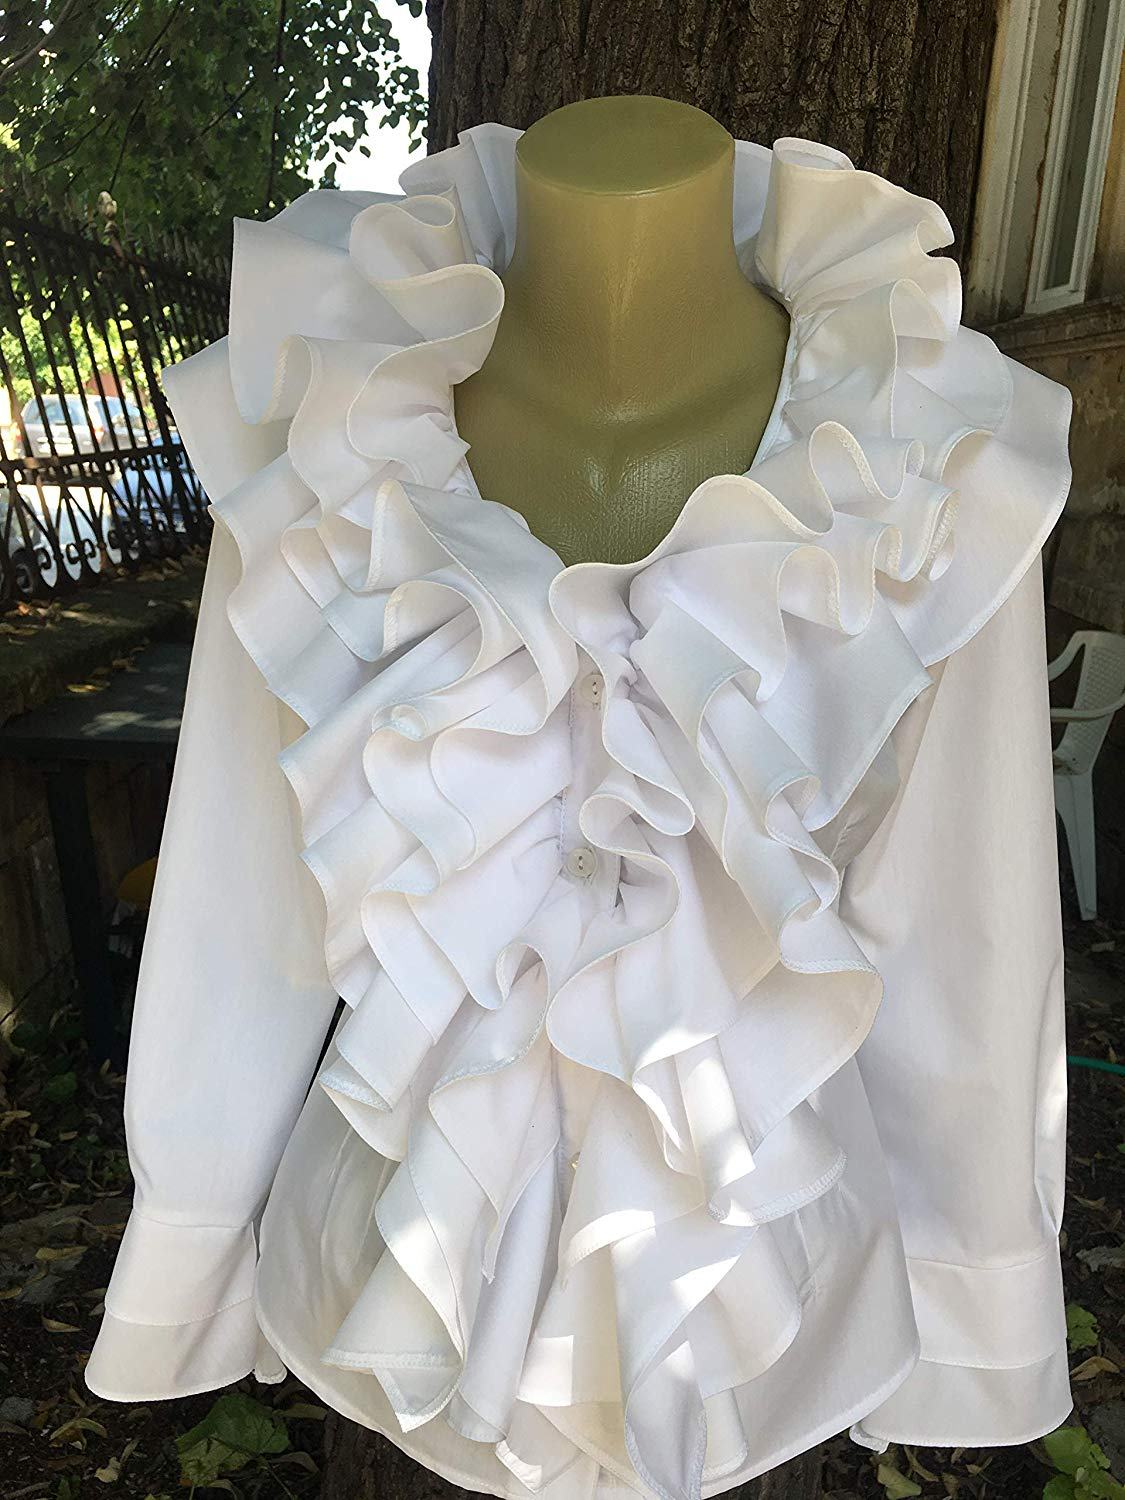 ce316feb123856 Get Quotations · Pirate blouse, Gothic shirt, Steampunk blouse, Lolita,  White Cotton blouse, Ruffled